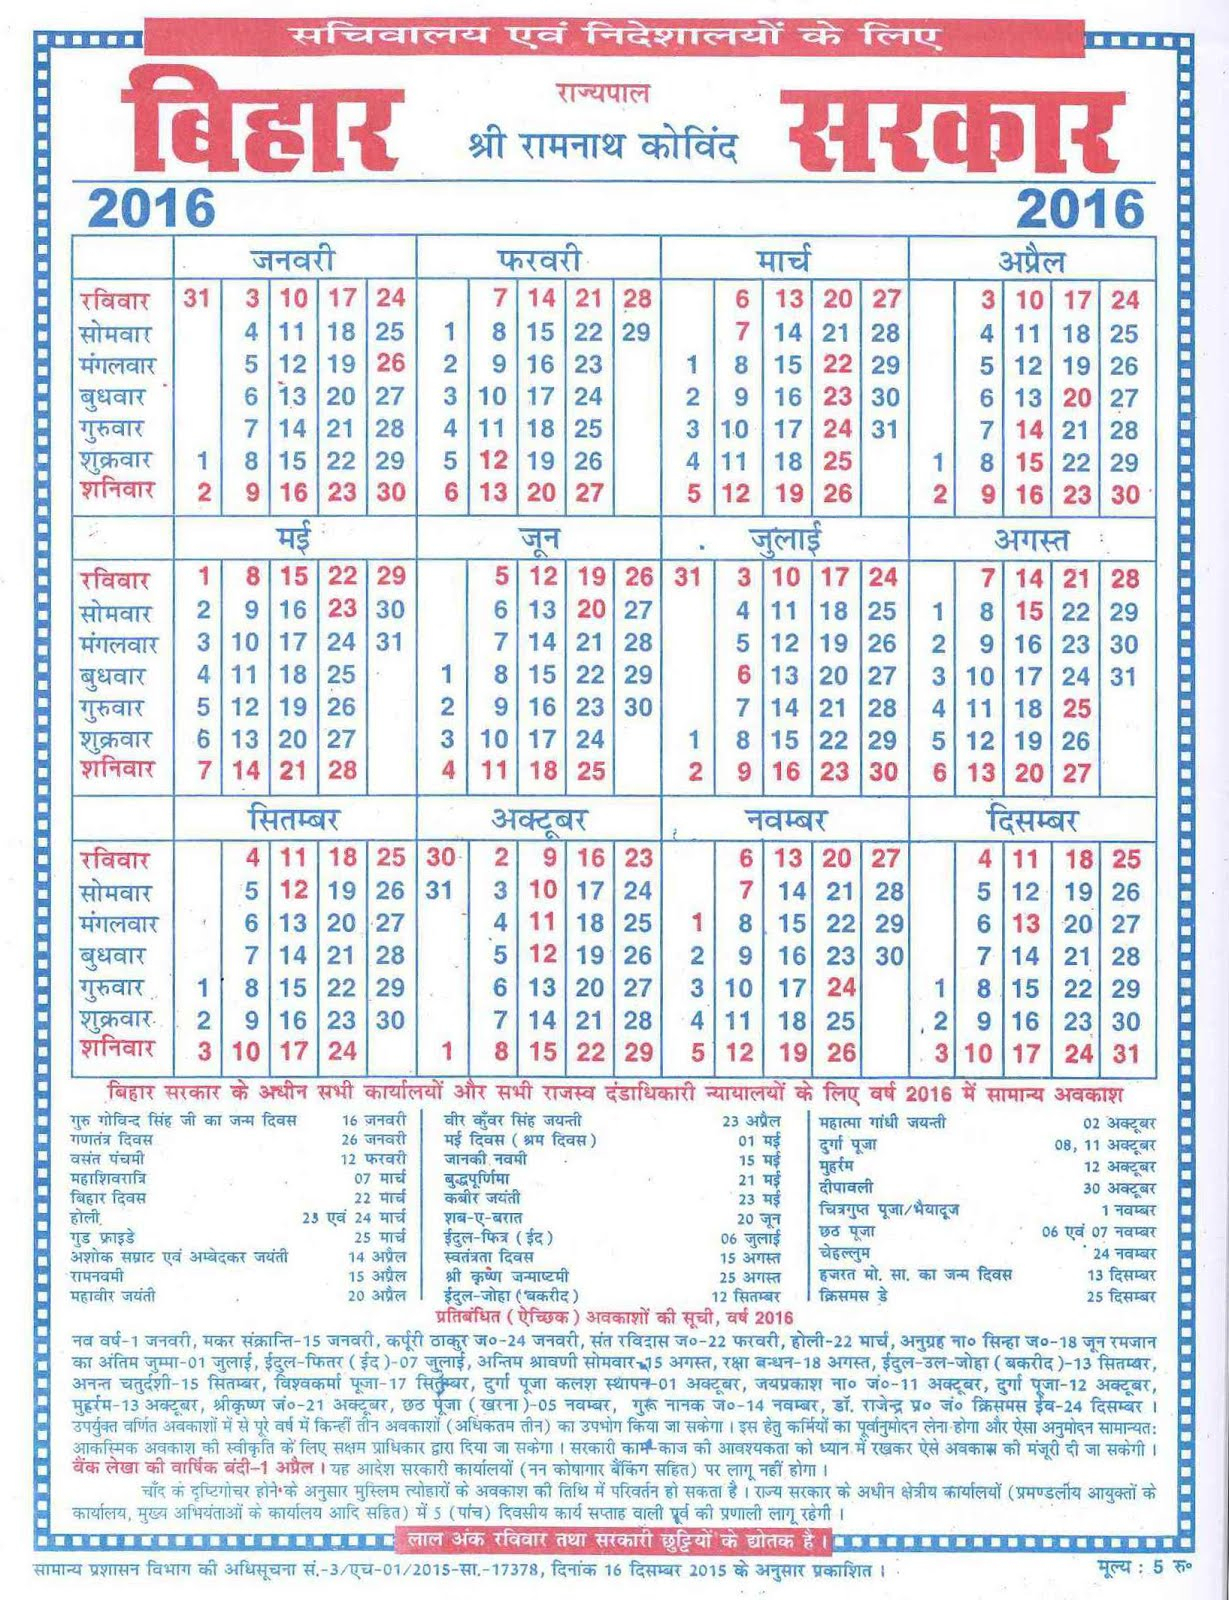 Bihar Government Calendar 2016 Download regarding Bihar Government Calendar